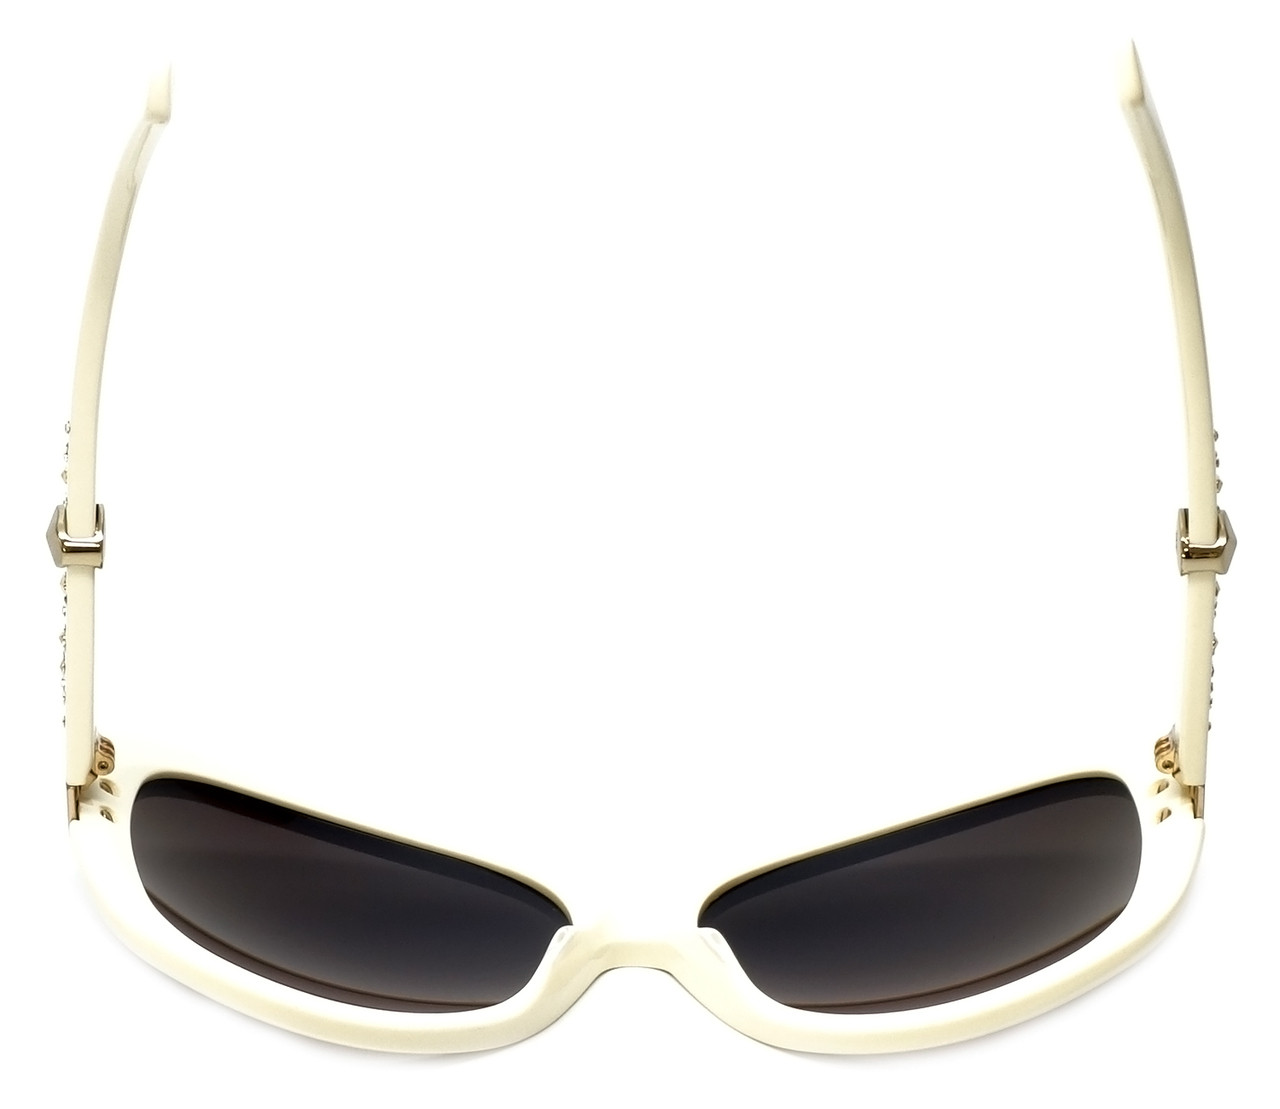 06289a7c45d Christian Dior Designer Sunglasses Midnight-SBR in Ivory 60mm ...